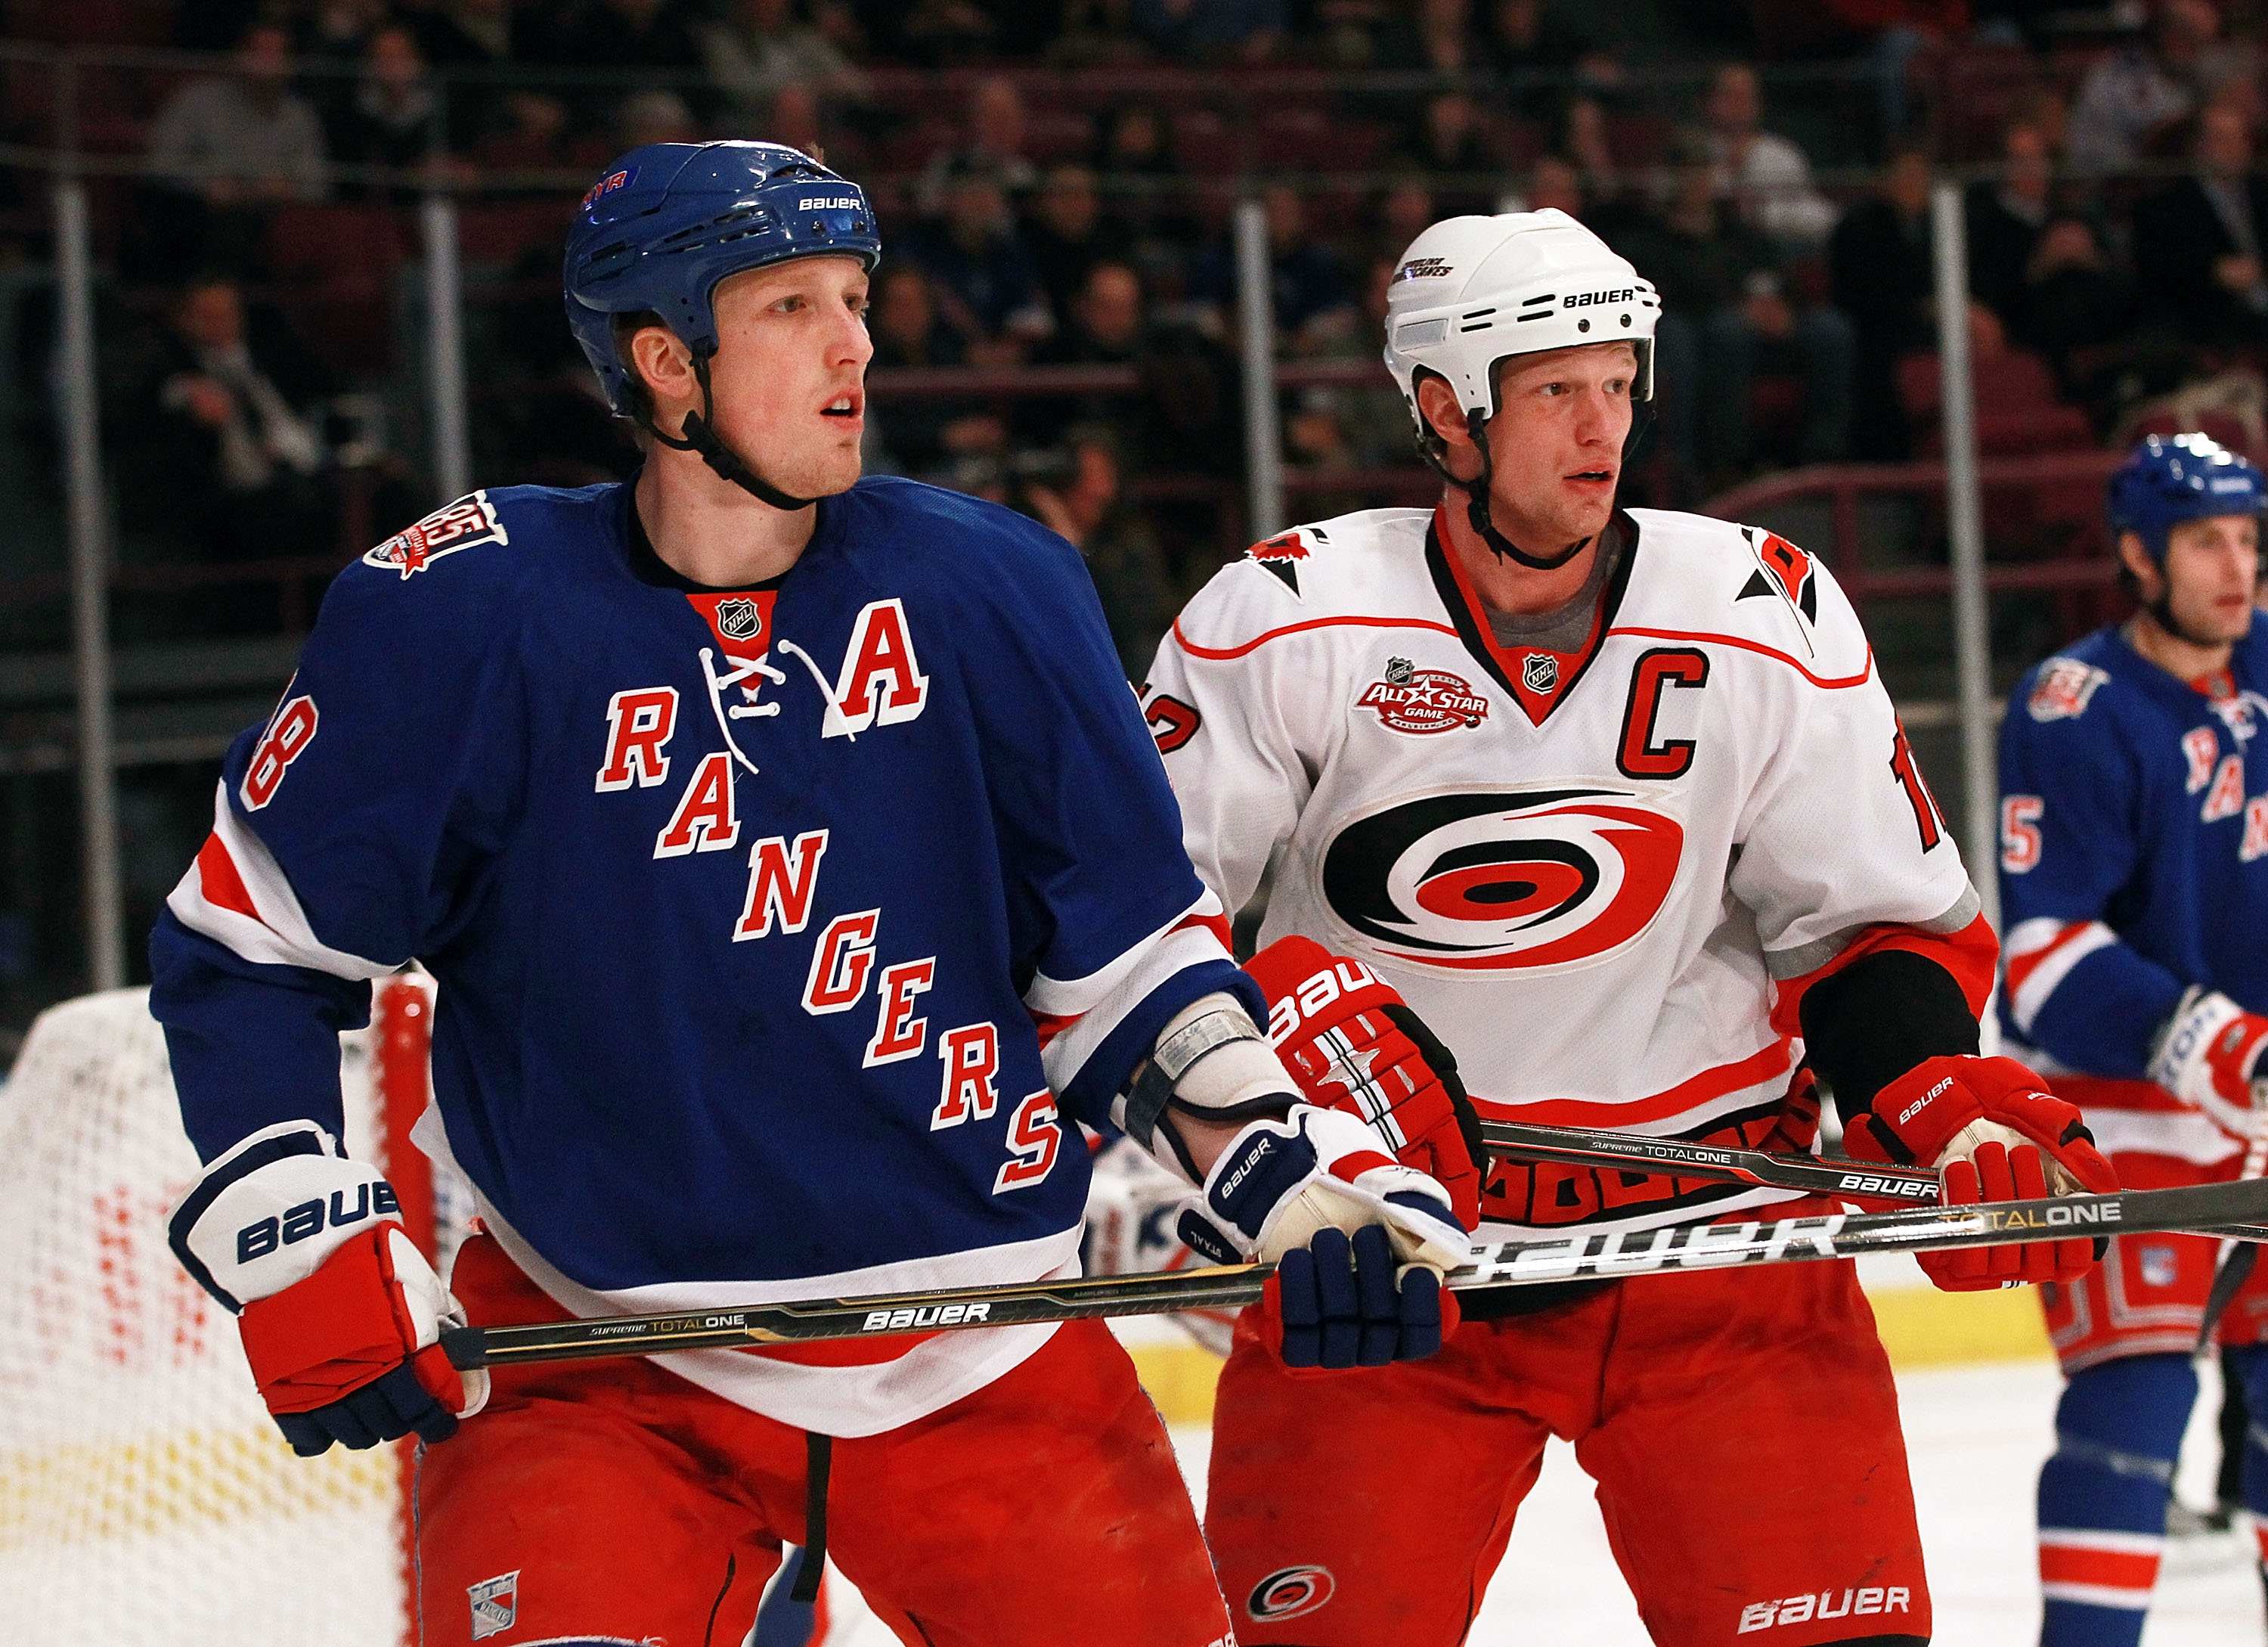 NEW YORK, NY - JANUARY 05: Marc Staal #18 of the New York Rangers skates against his brother Eric Staal #12 of the Carolina Hurricanes at Madison Square Garden on January 5, 2011 in New York City.  (Photo by Bruce Bennett/Getty Images)